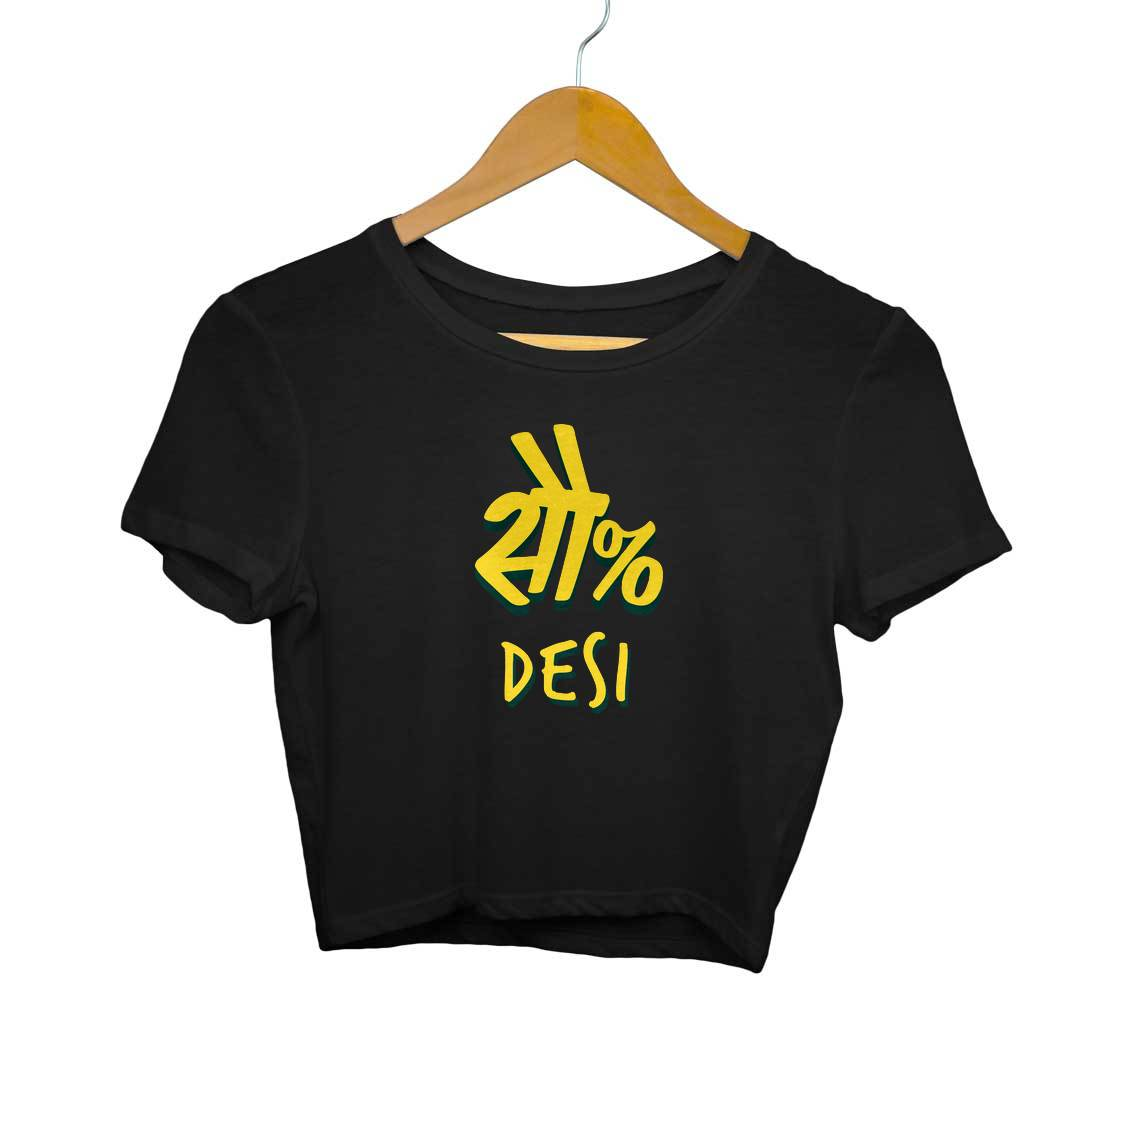 100% Desi Crop Tops